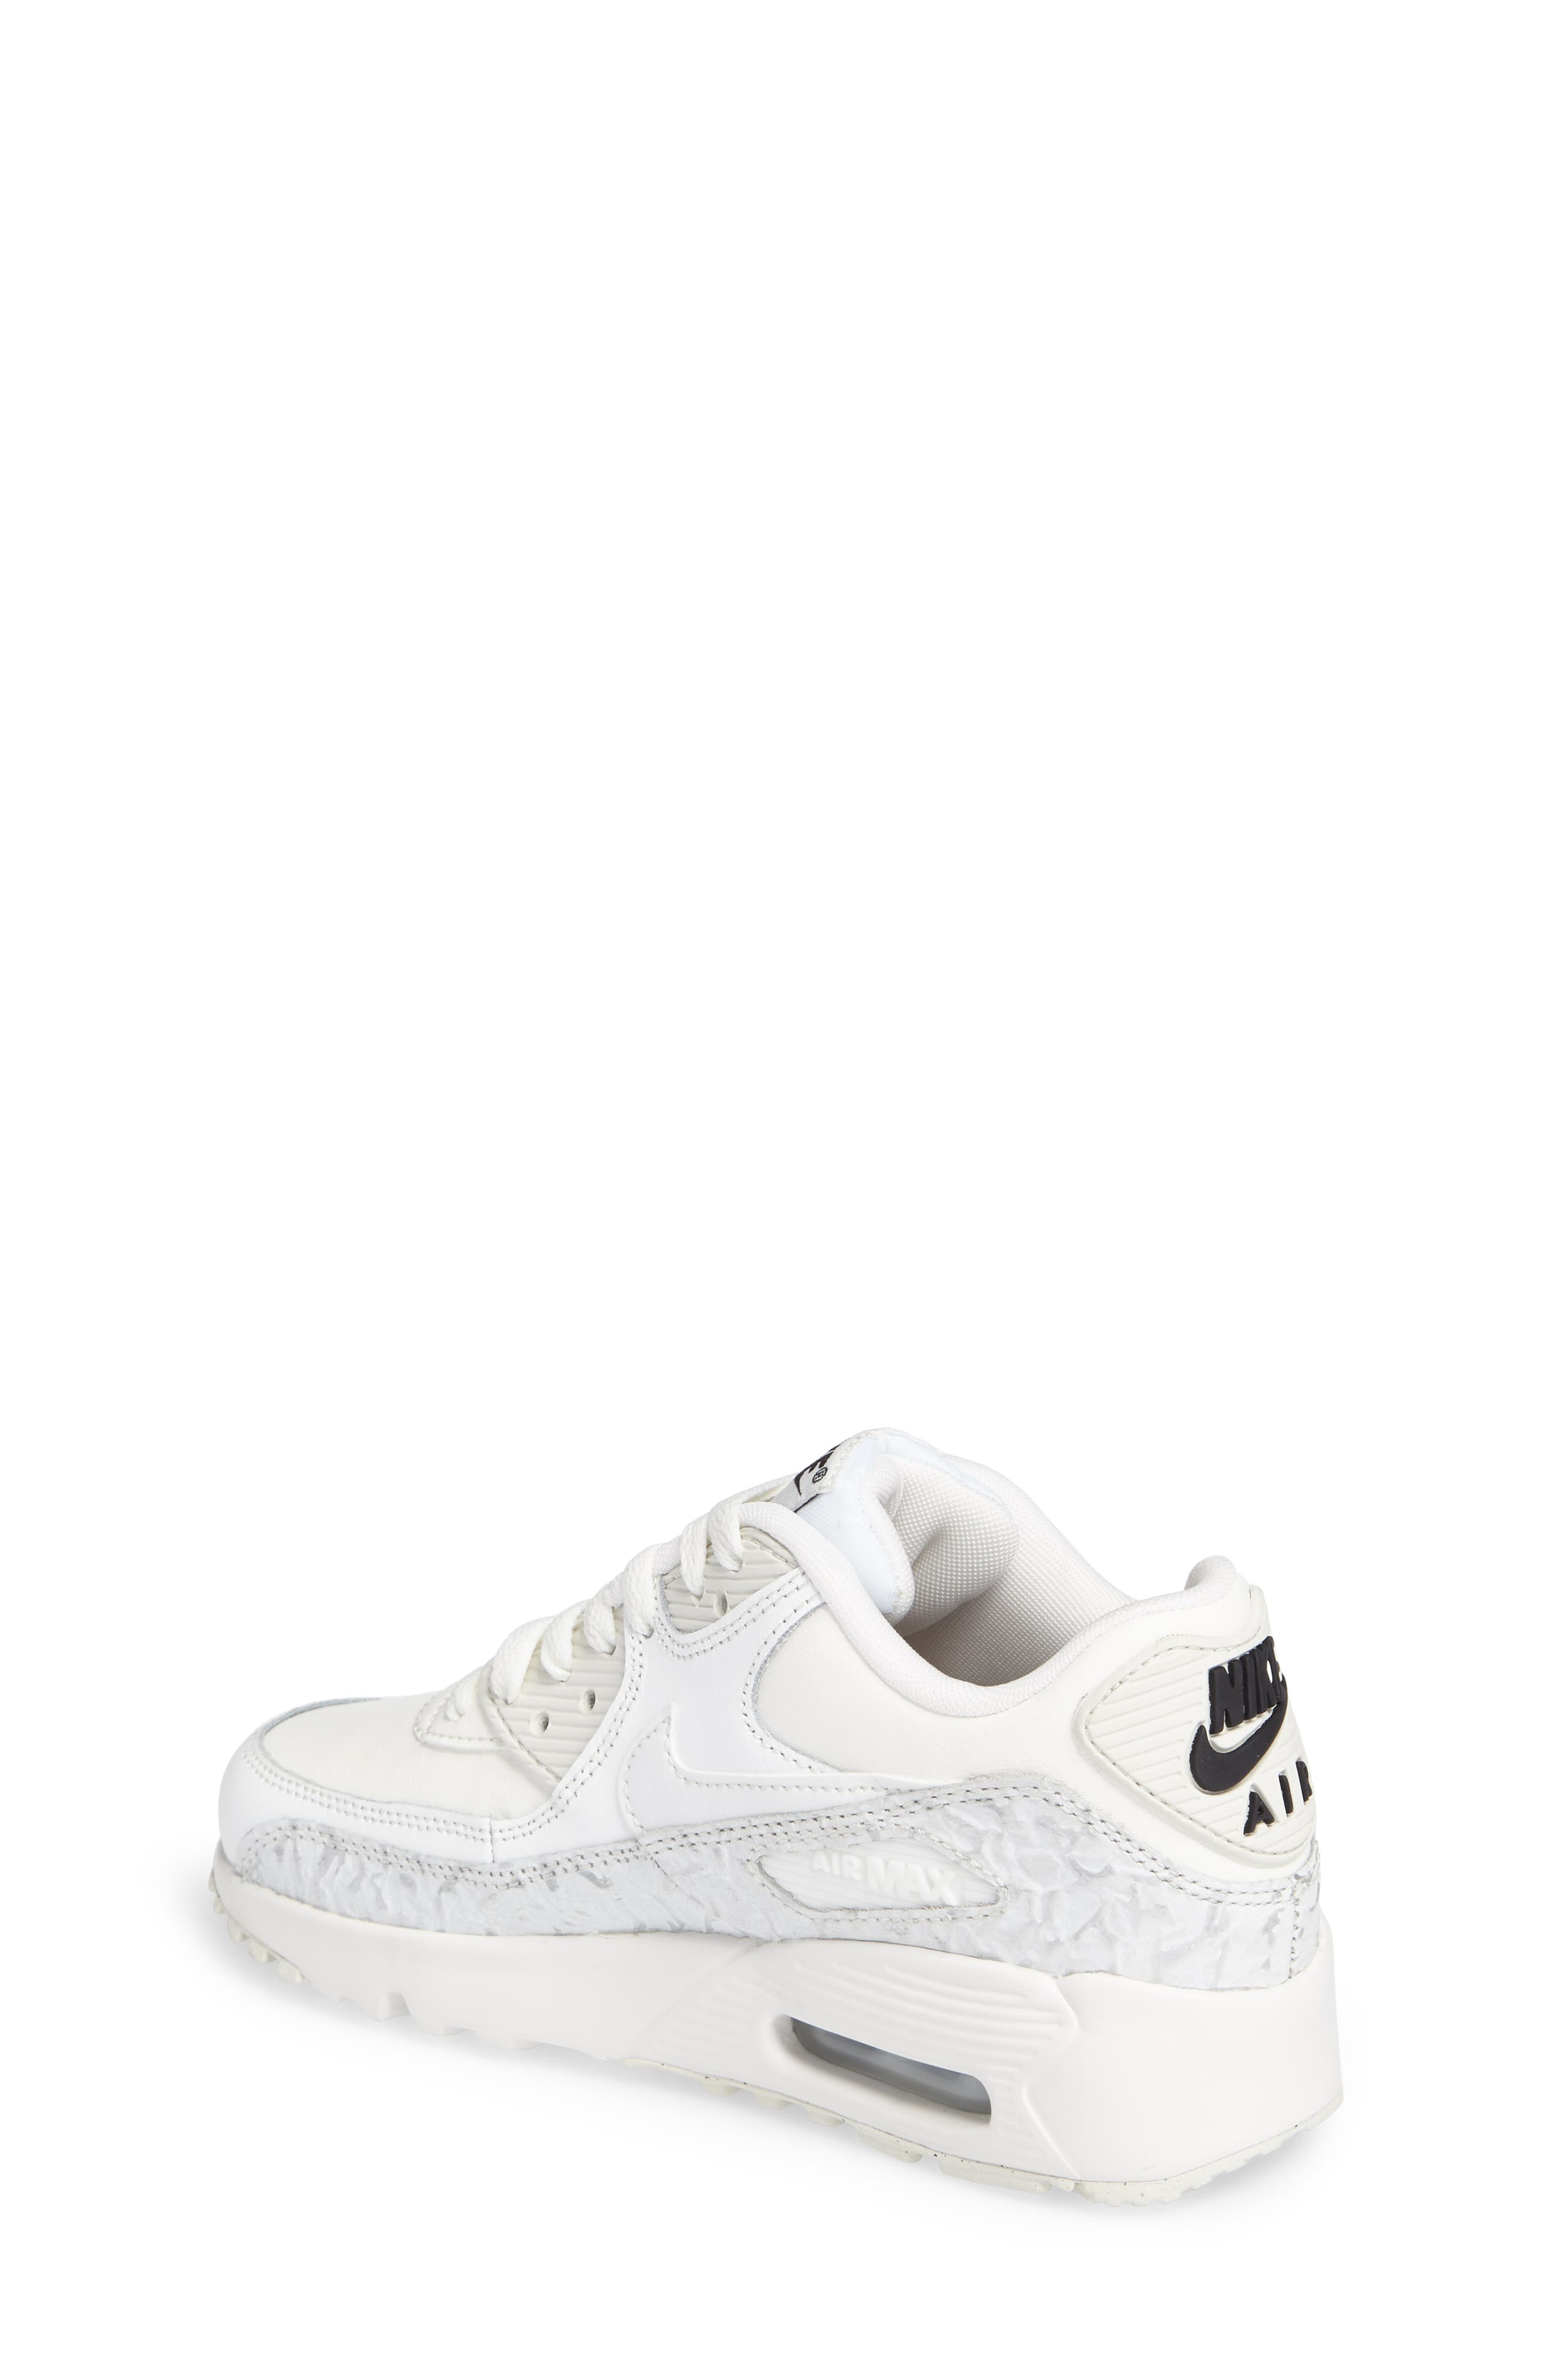 Air Max 90 Leather Sneaker,                             Alternate thumbnail 2, color,                             Summit White/ Black